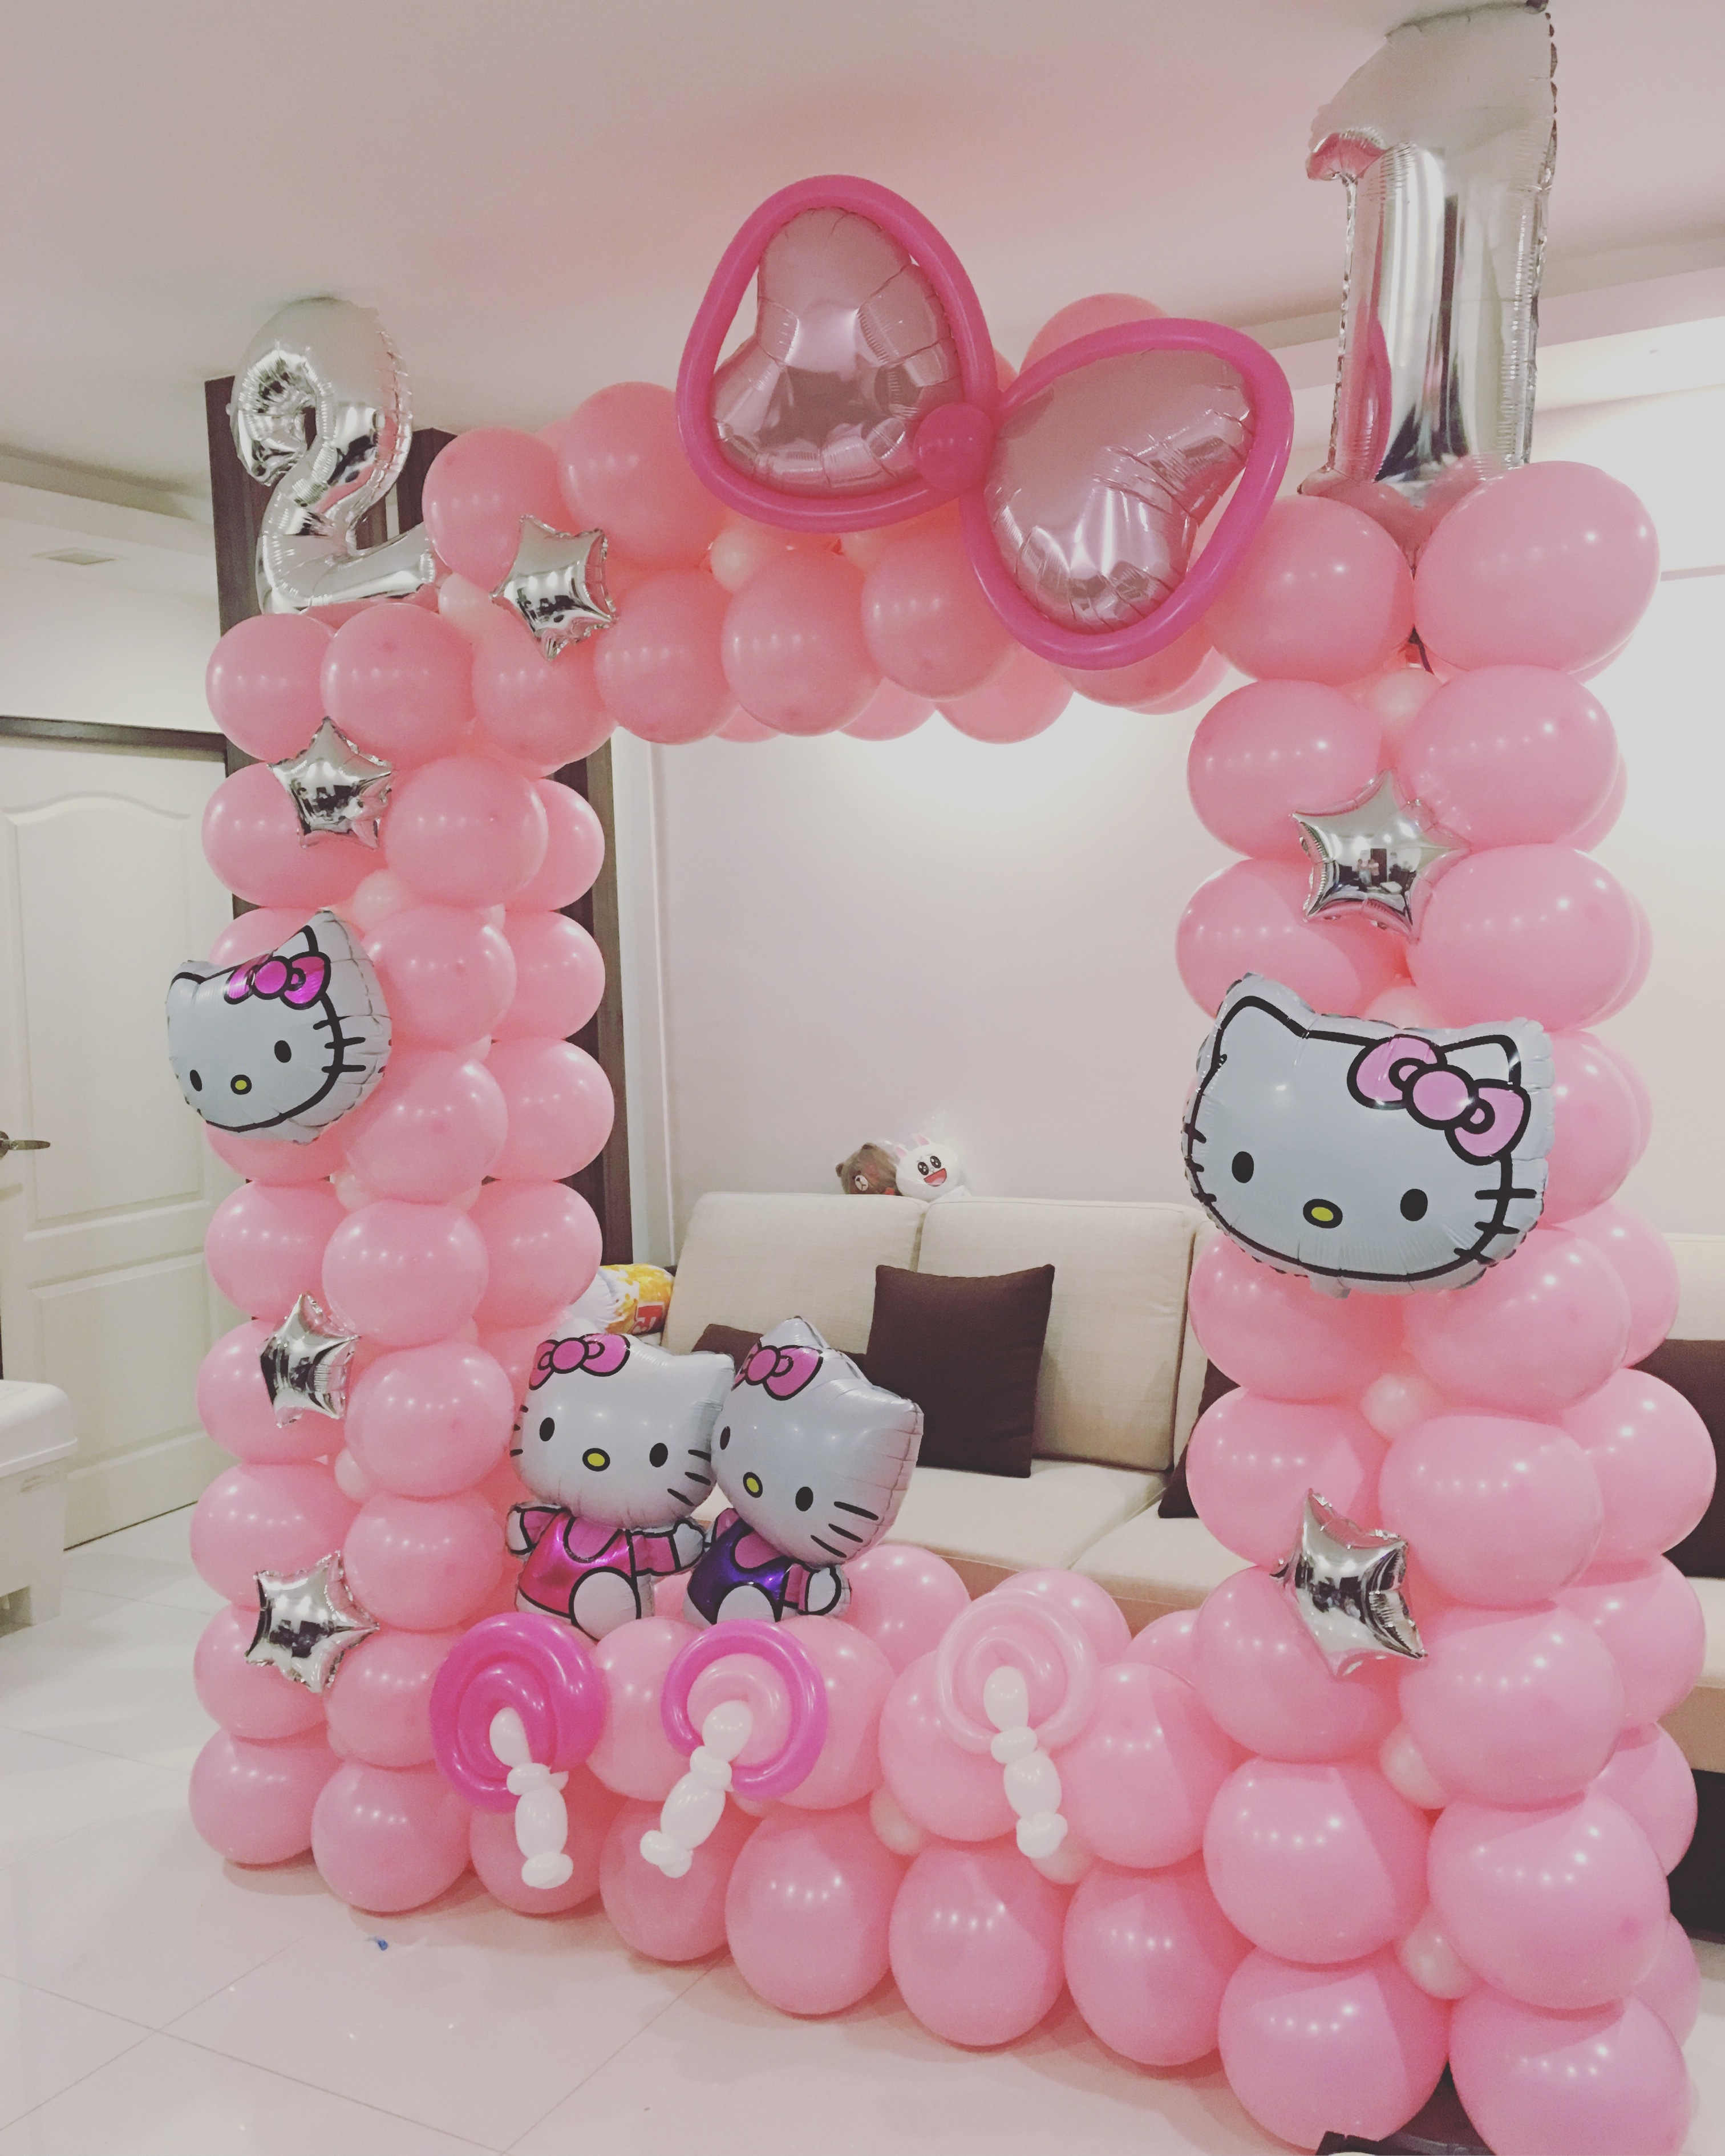 21st Birthday Balloon Decorations